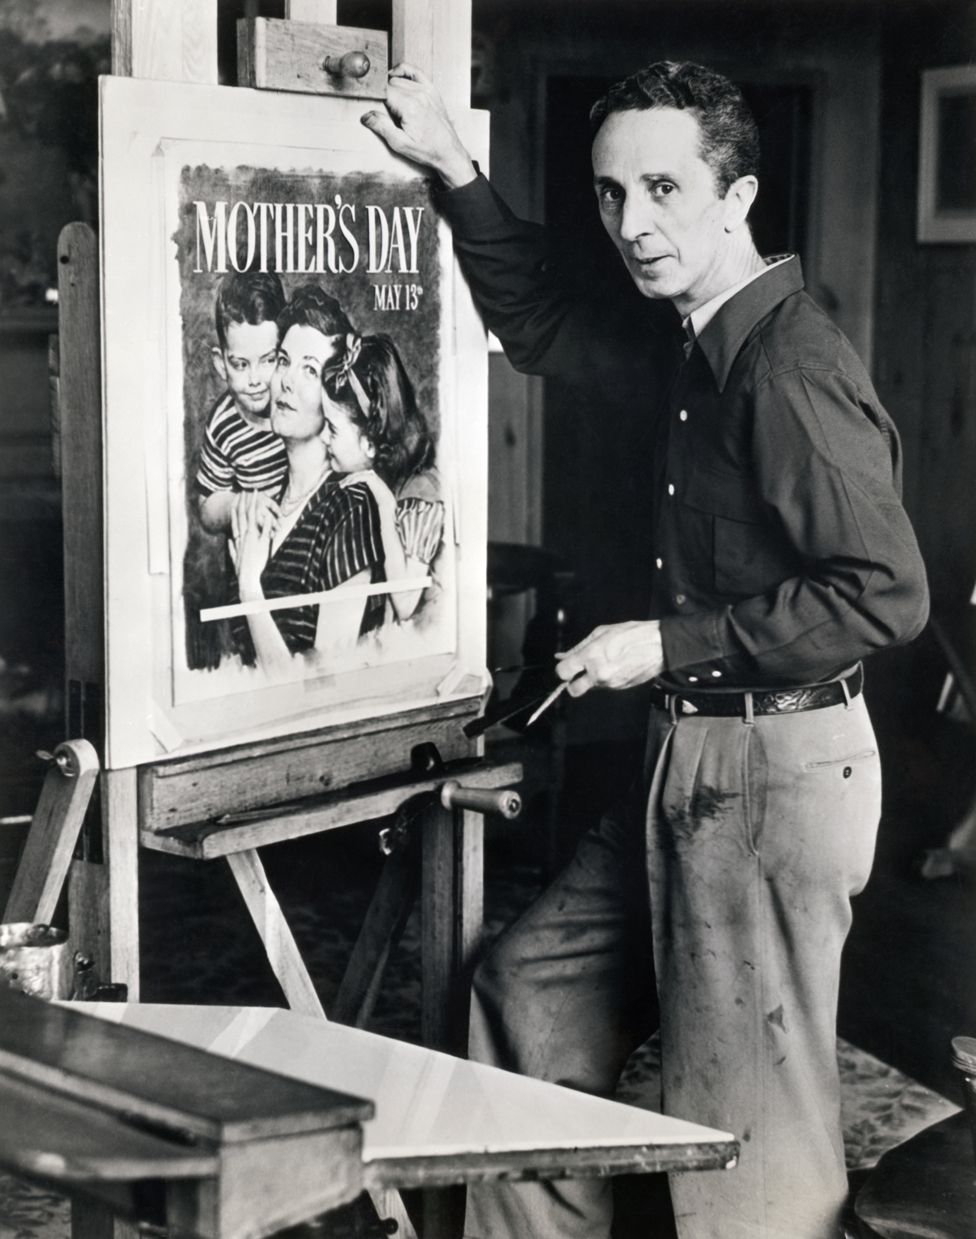 Norman Rockwell (1894-1978) American painter and illustrator, at work on official 1951 Mother's Day poster